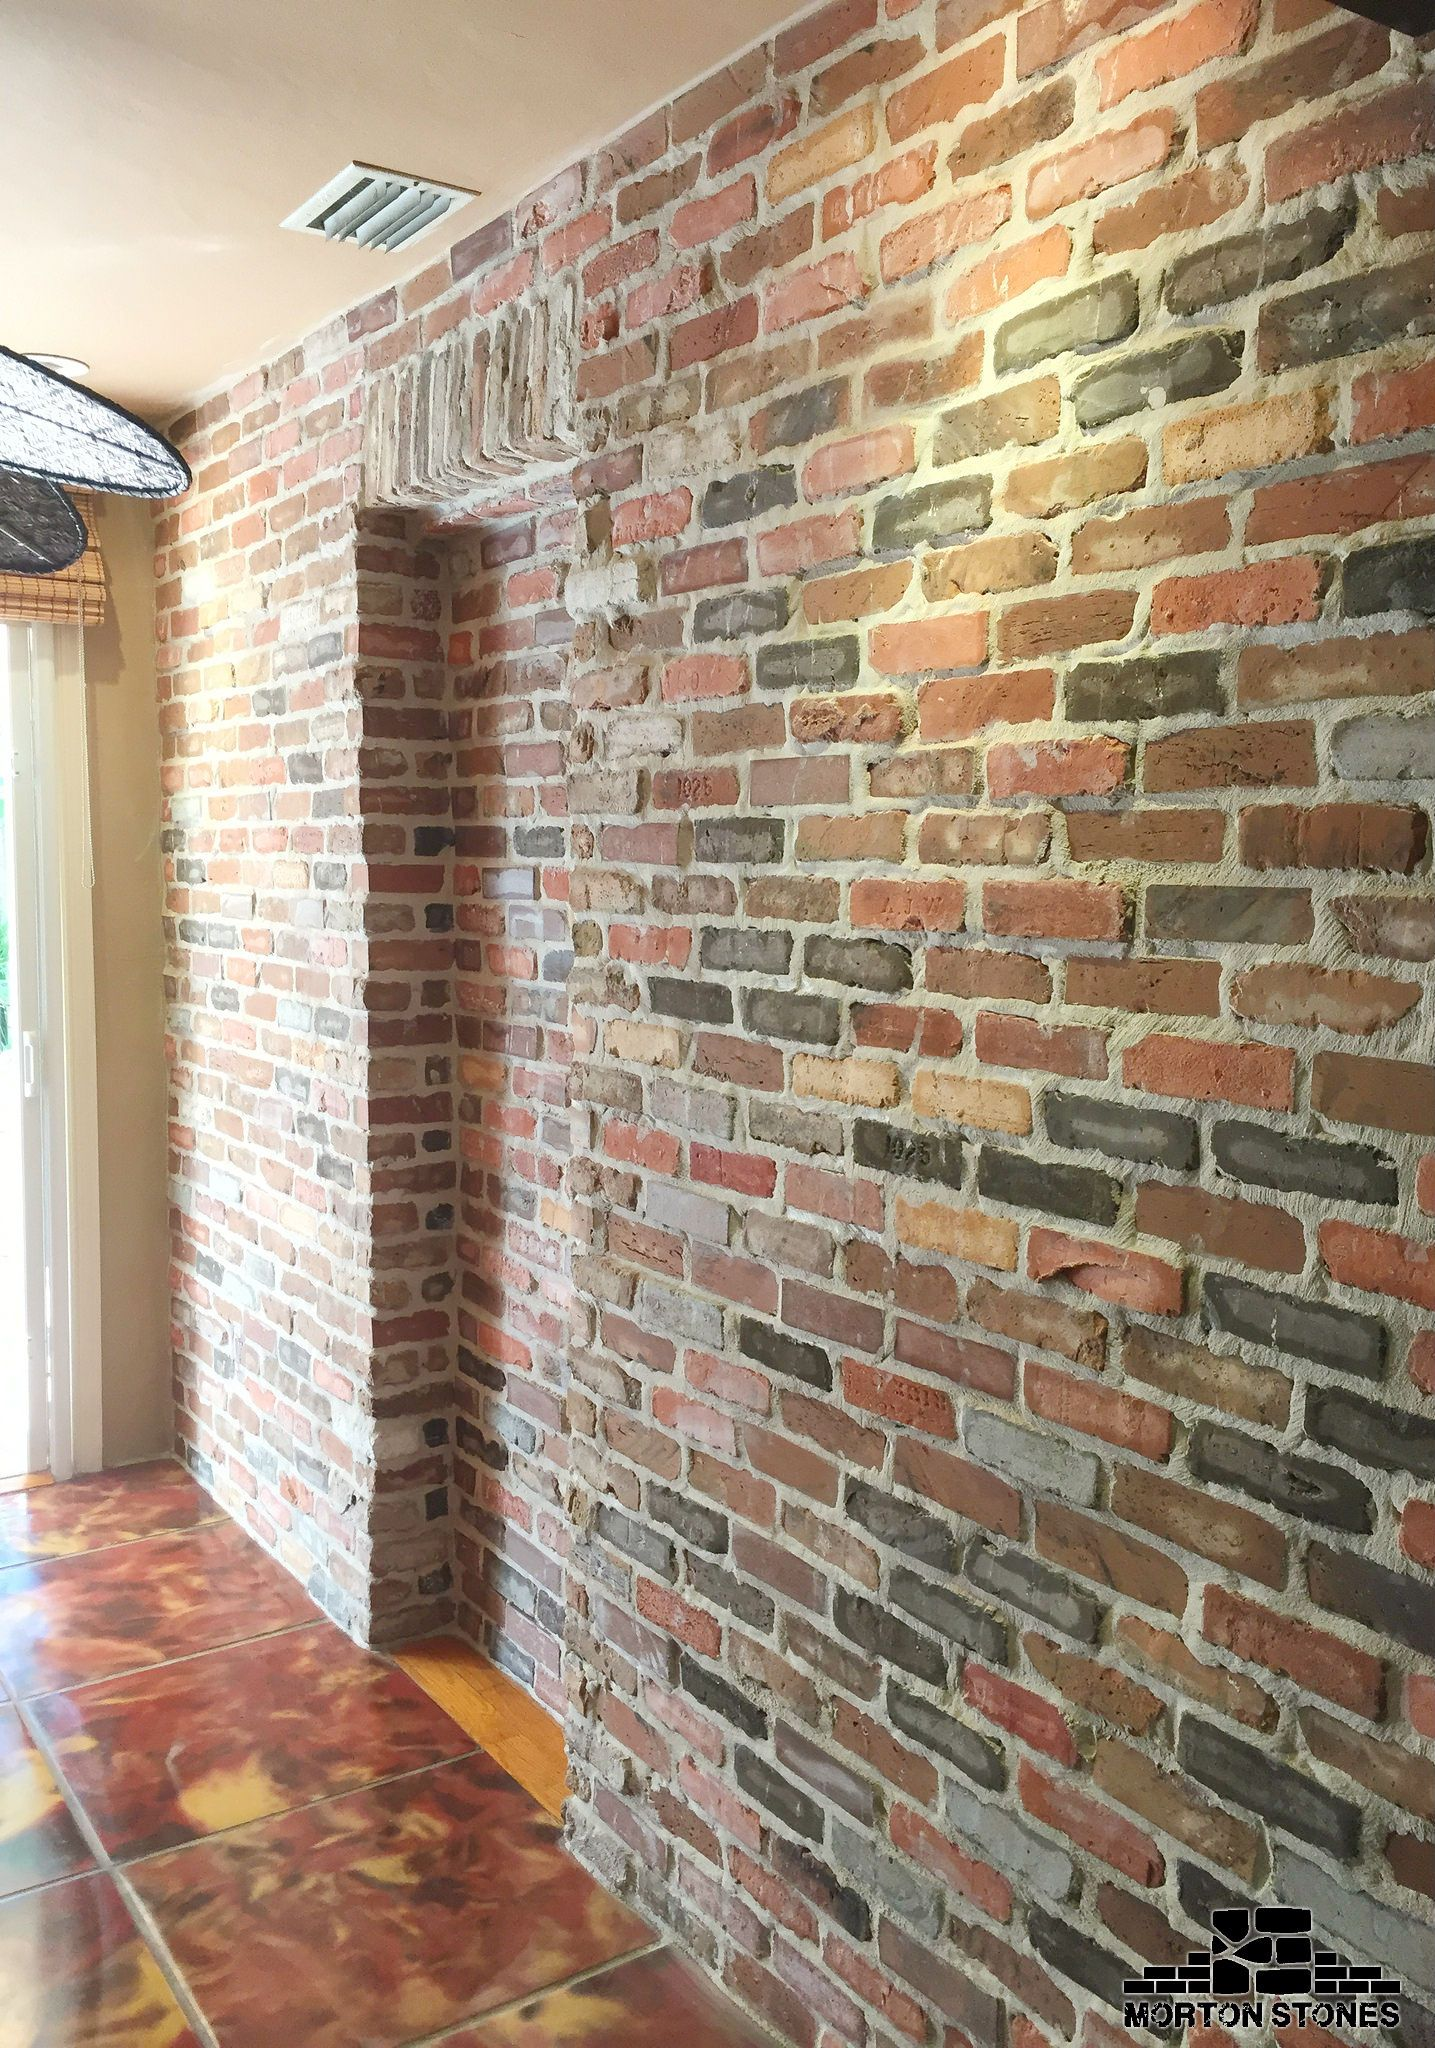 This Is What We Called A Beautiful Red Brick Veneer Wall Mortonstones Brick Tiles Rustic Thinbrick Ho Brick Cladding Brick Tile Wall Brick Interior Wall